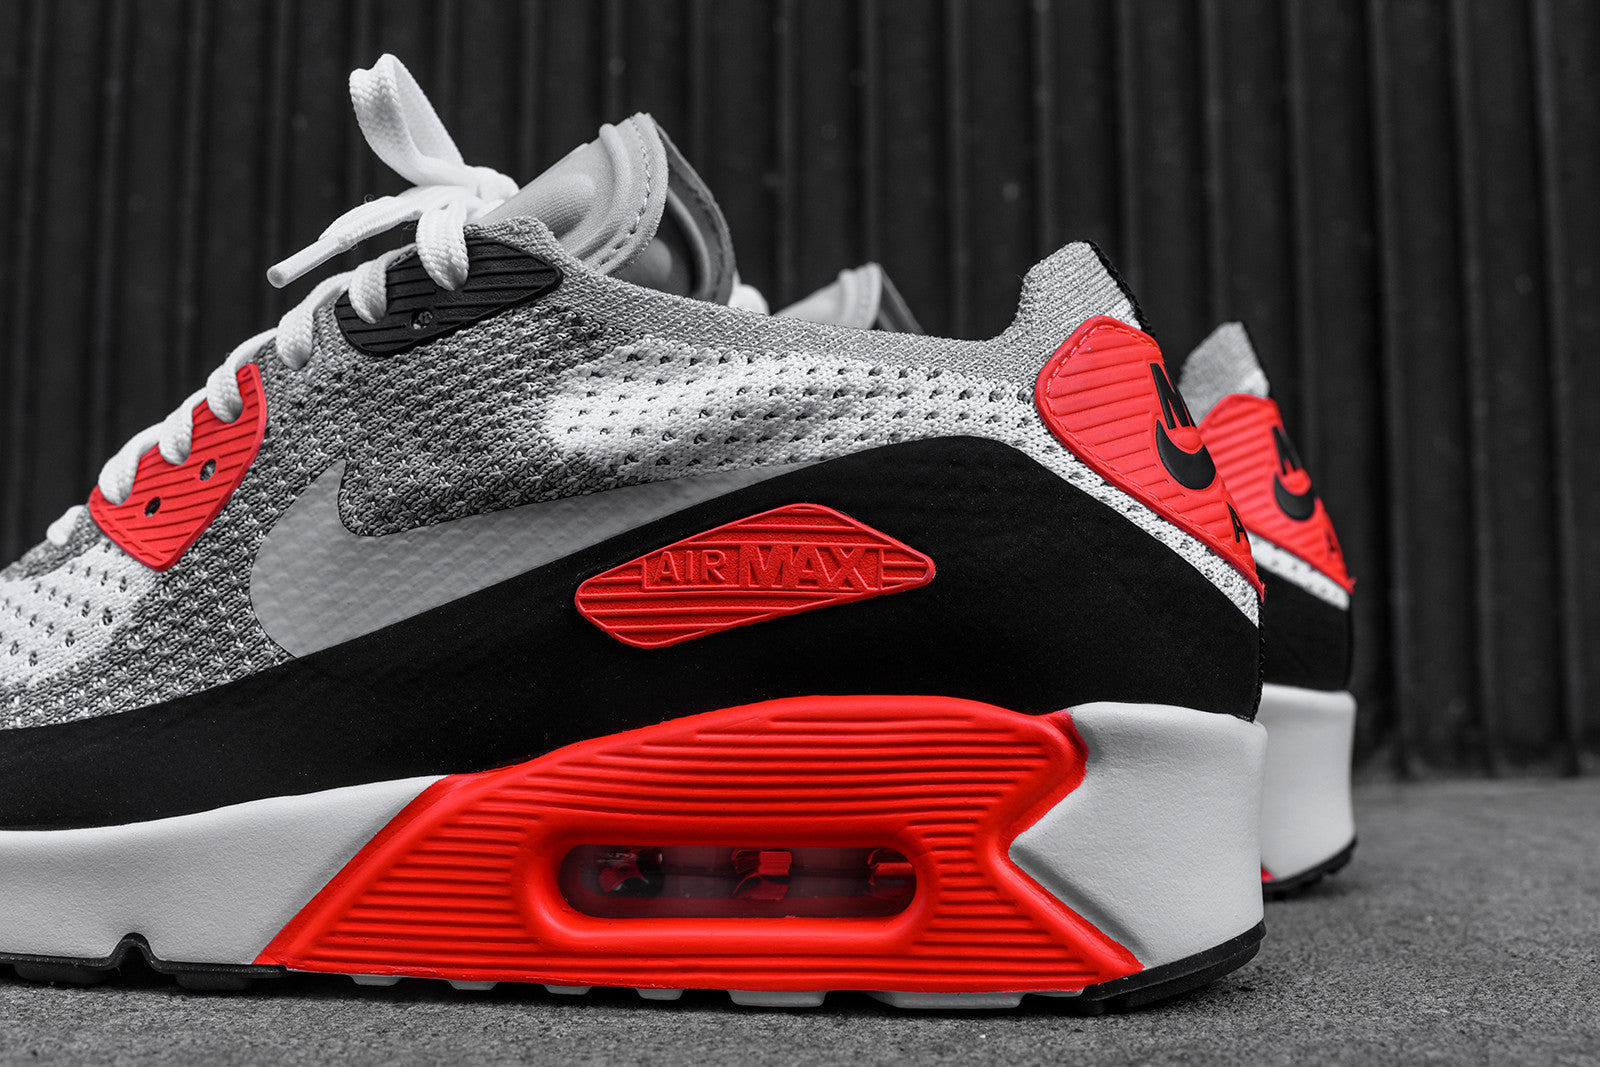 Nike Air Max 90 Ultra Flyknit - Infrared / White / Black